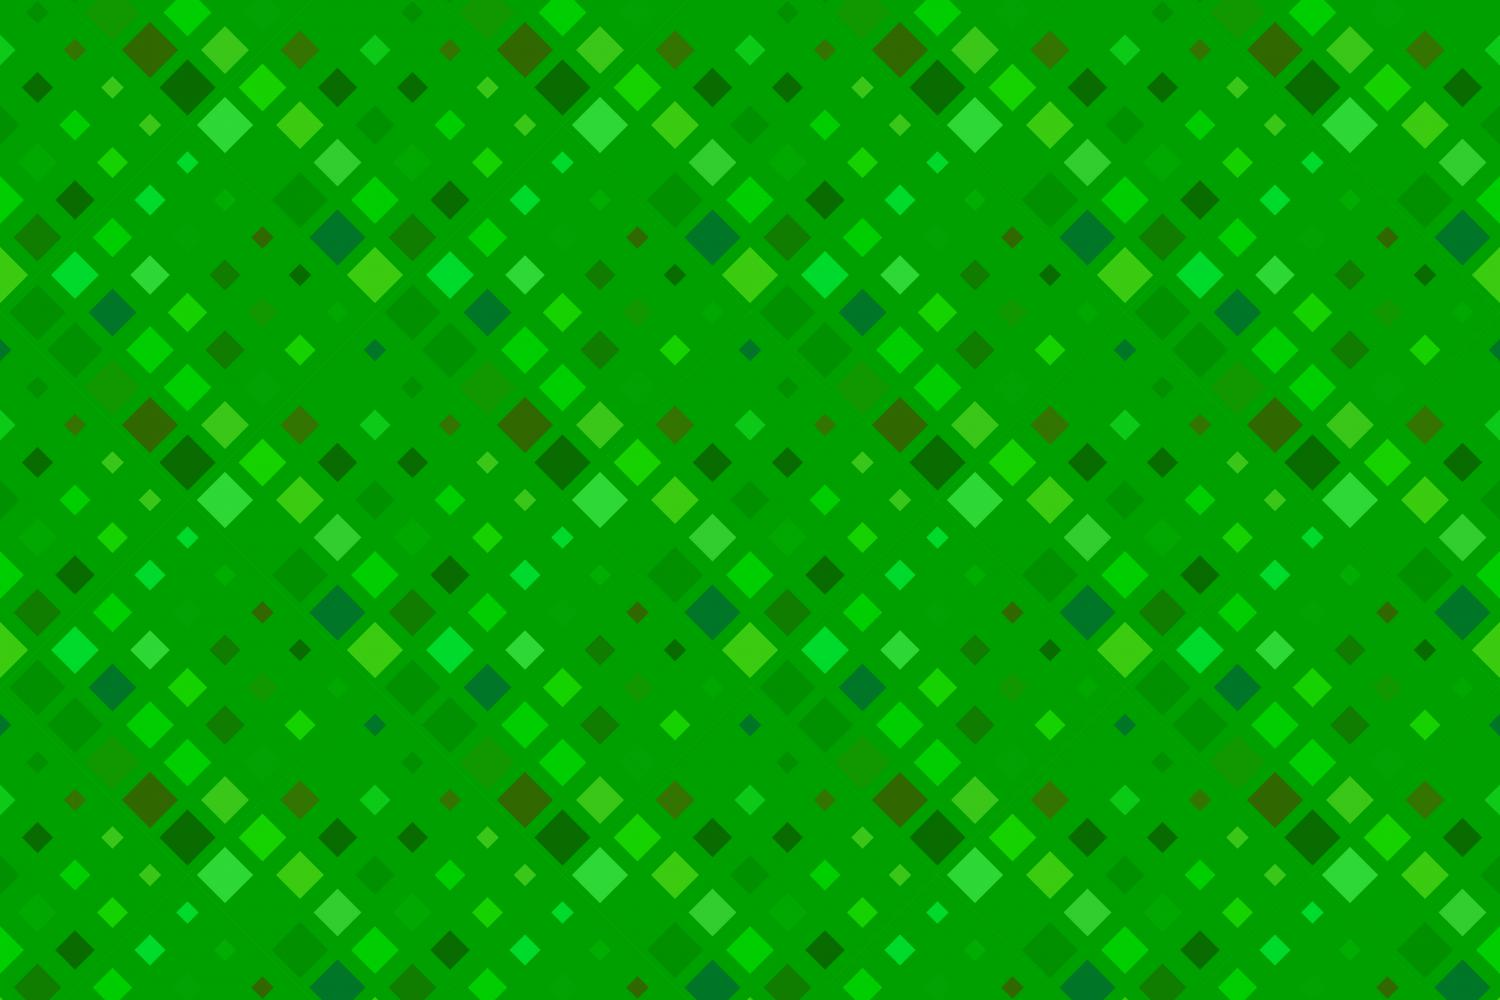 24 Seamless Green Square Patterns example image 19